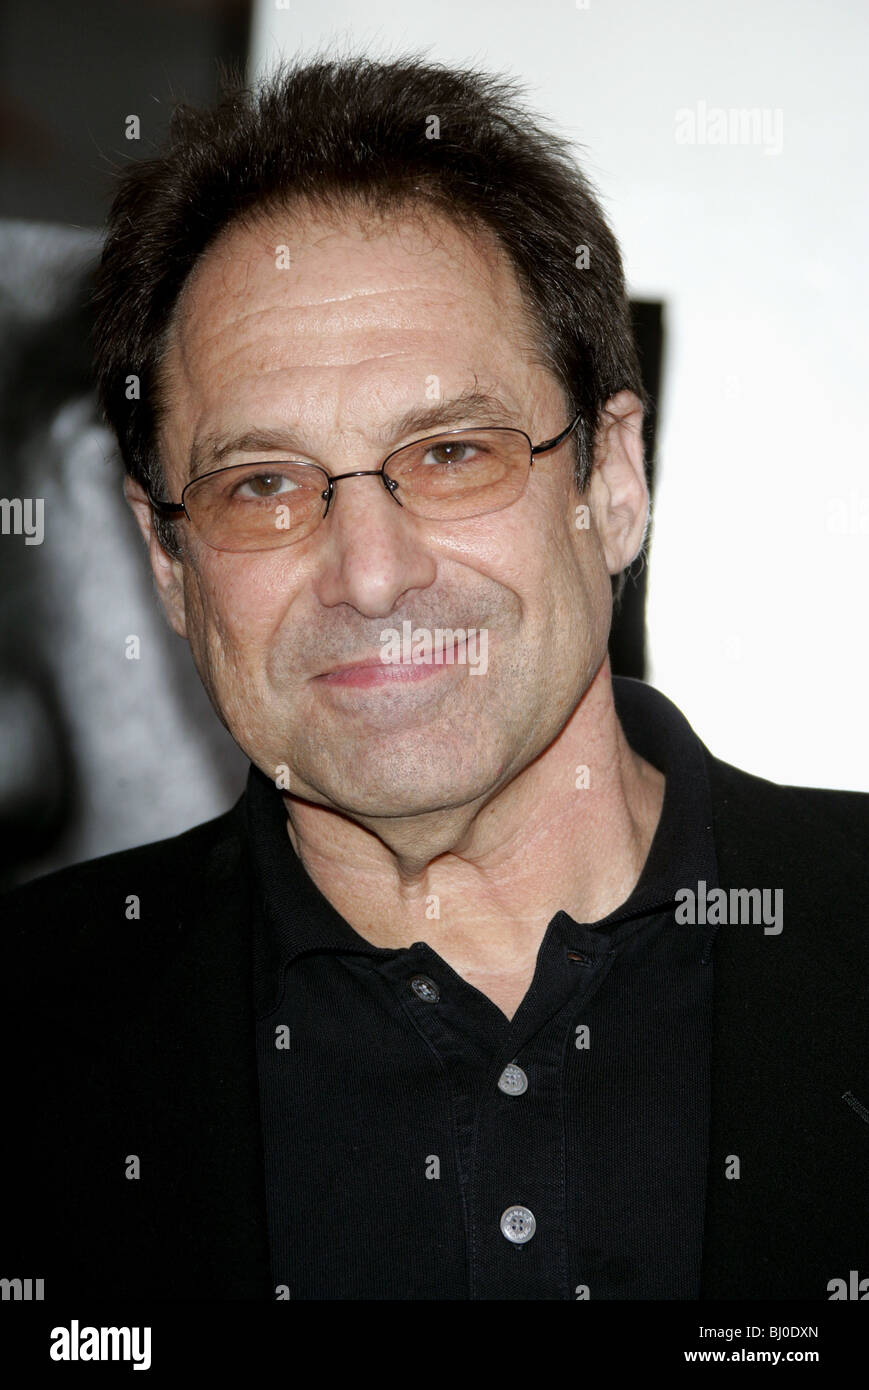 DAVID MILCH CREATOR OF DEADWOOD CINERAMA DOME  HOLLYWOOD  LOS ANGELES  USA 06/06/2006 - Stock Image